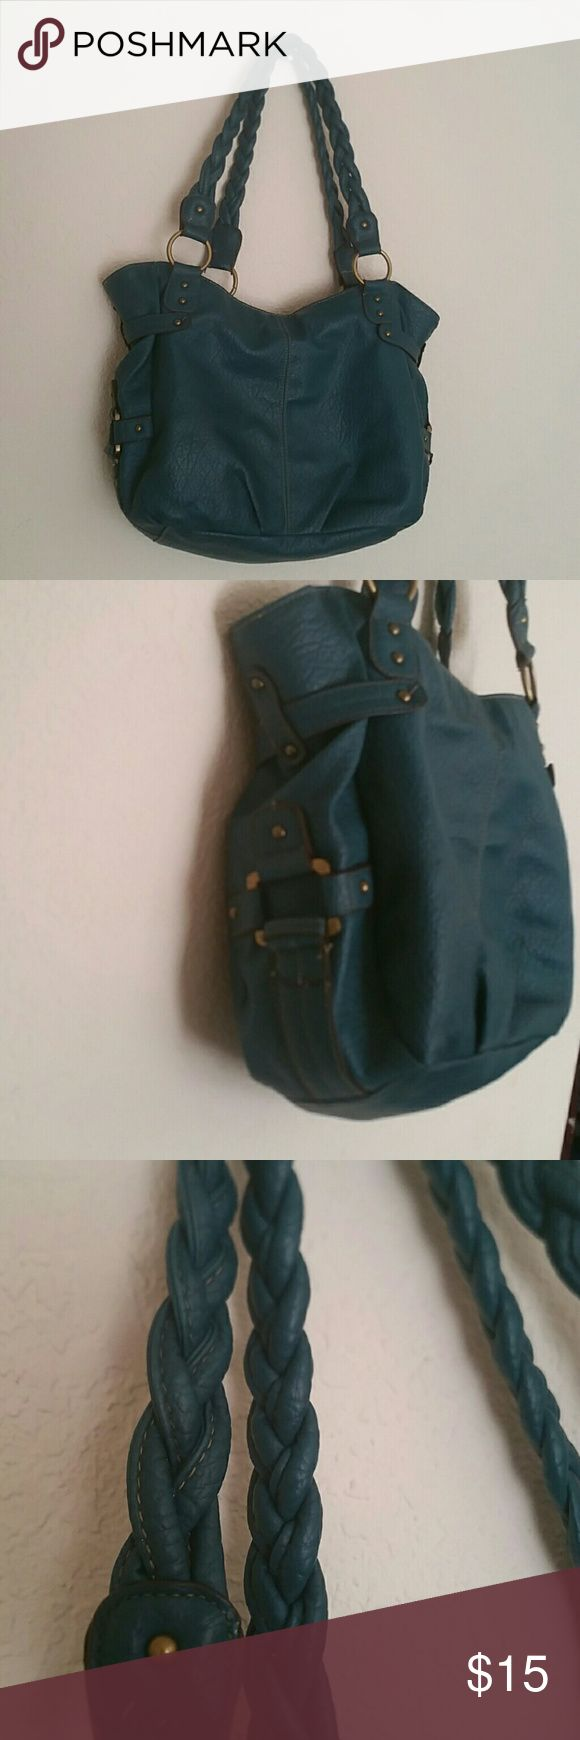 Large side bag This was loved and used a lot by me. As a purse and a book bag for school but I no longer use it. Deep teal/blue color. Soft with braided straps. One interior zip pocket and the back also zips closed on top. target Bags Shoulder Bags